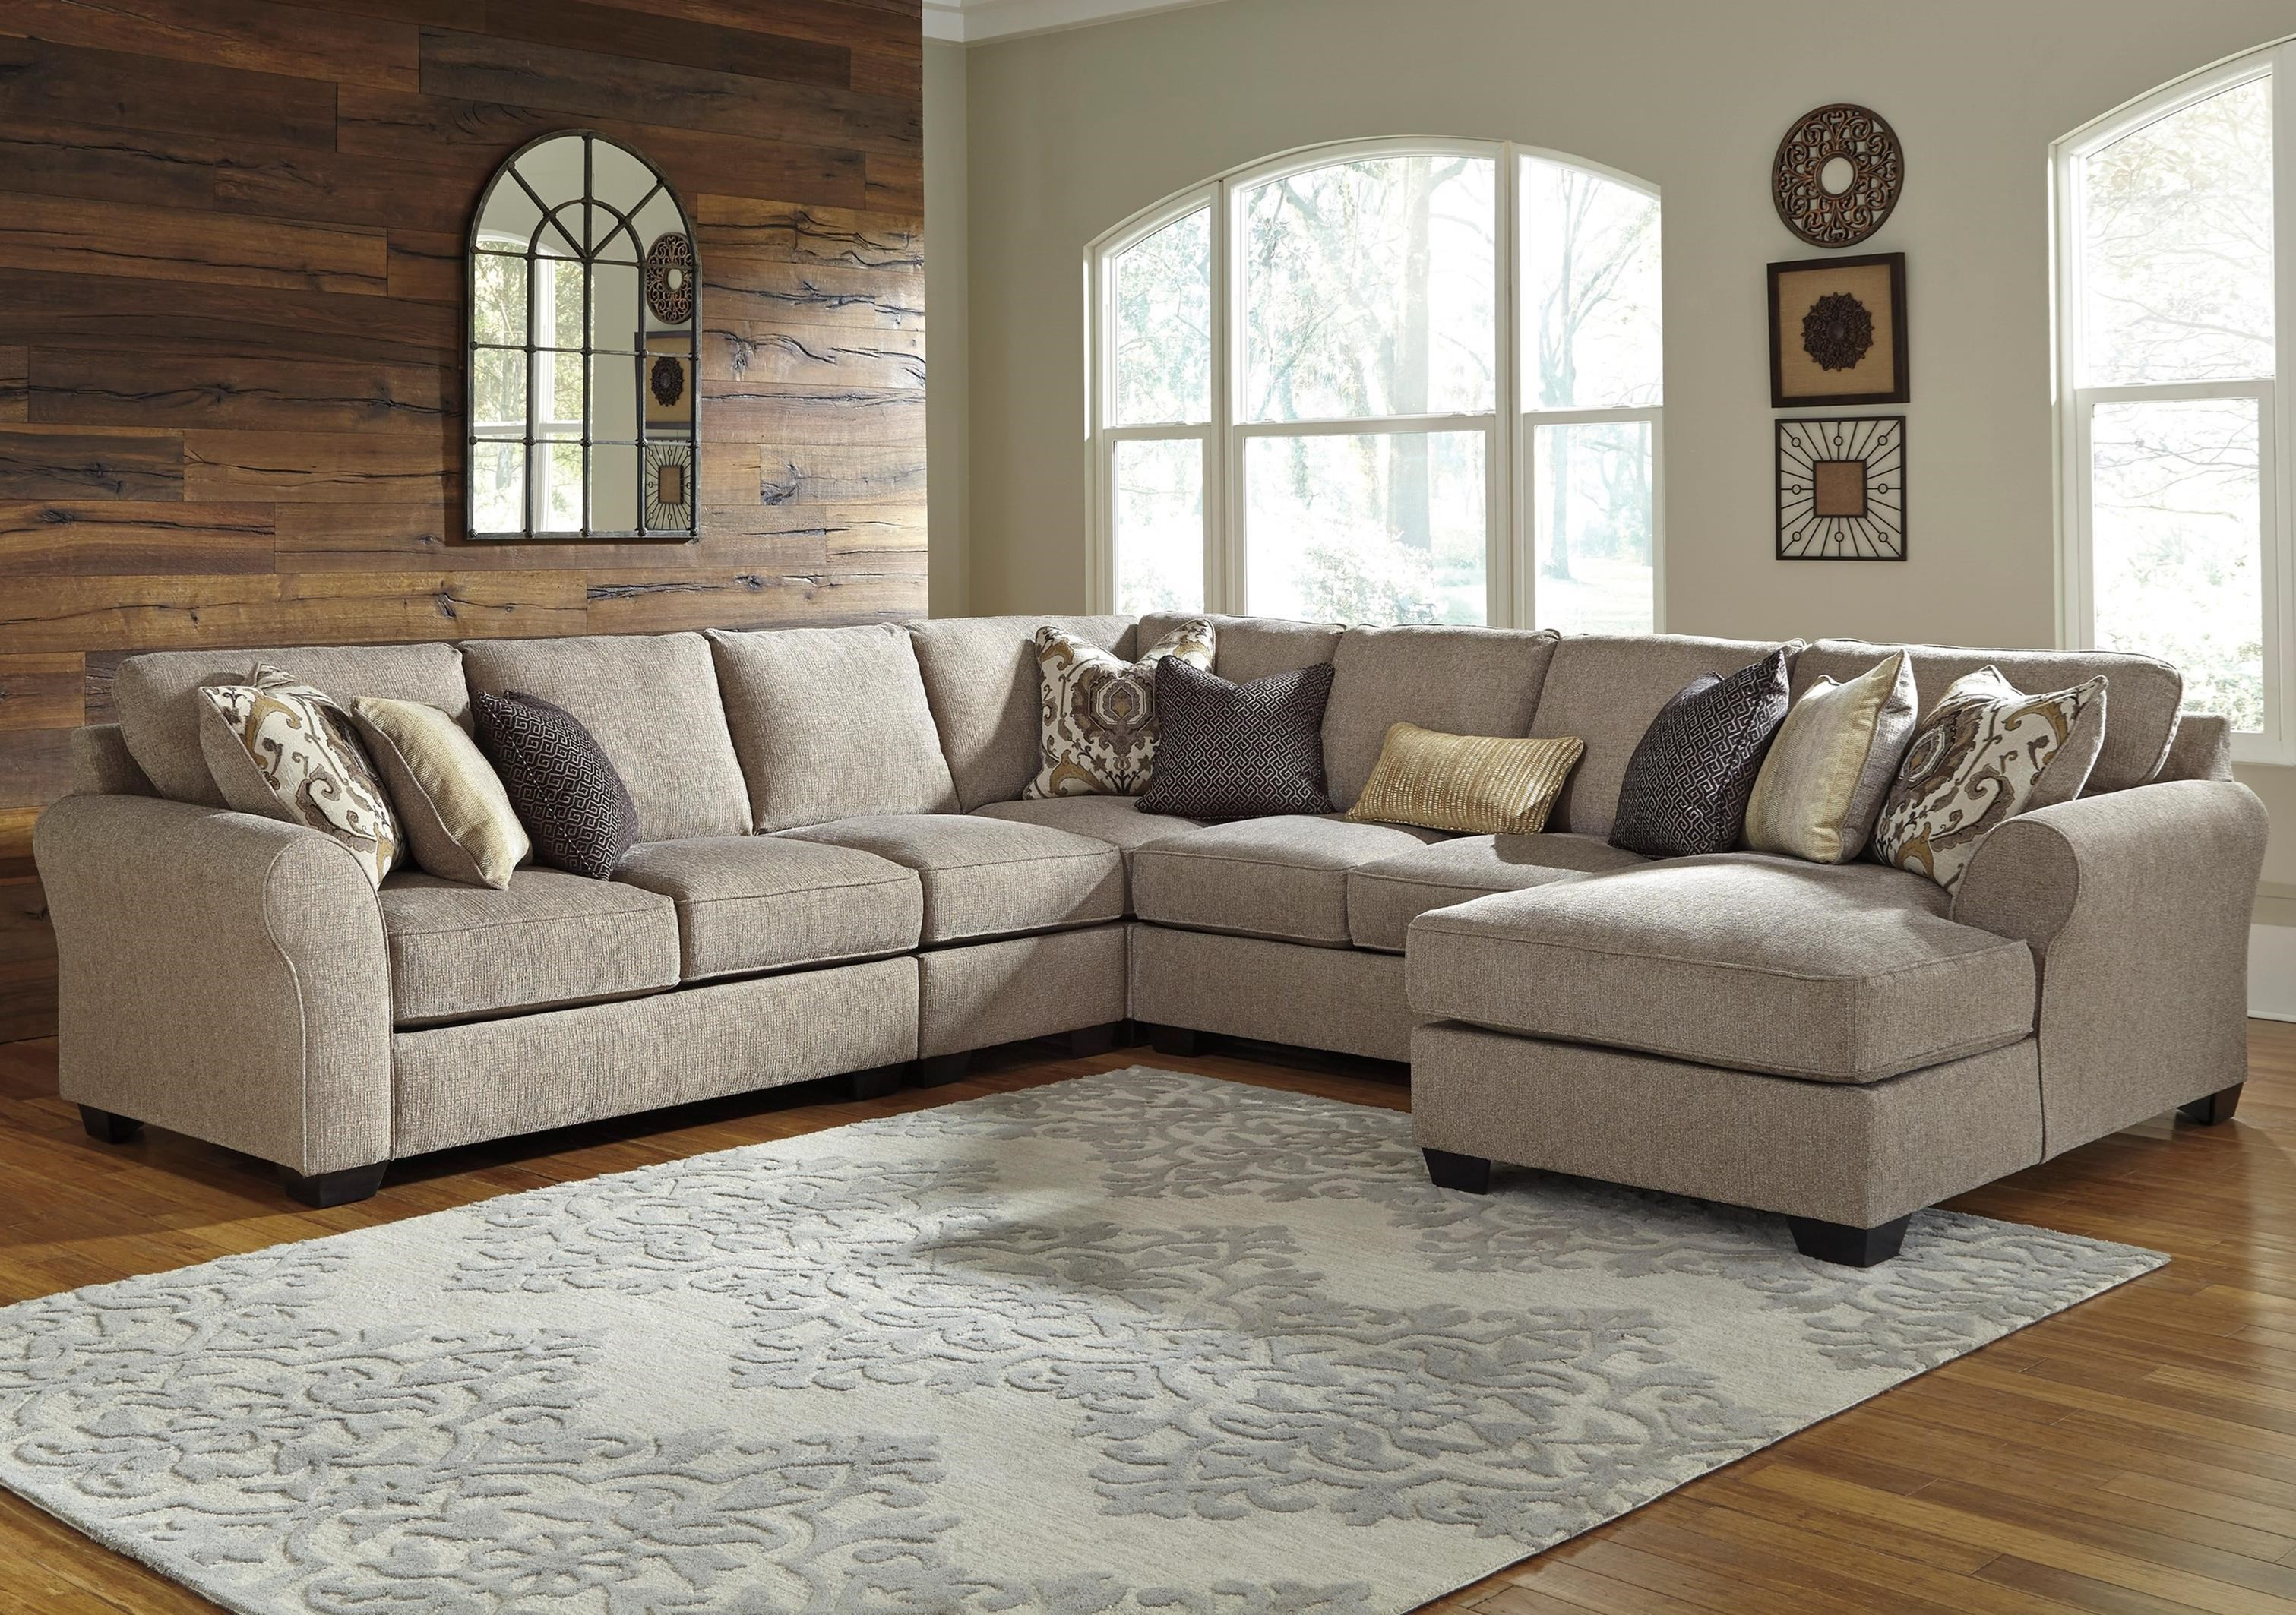 Pantomine 5-Piece Sectional with Right Chaise by Benchcraft at Walker's Furniture